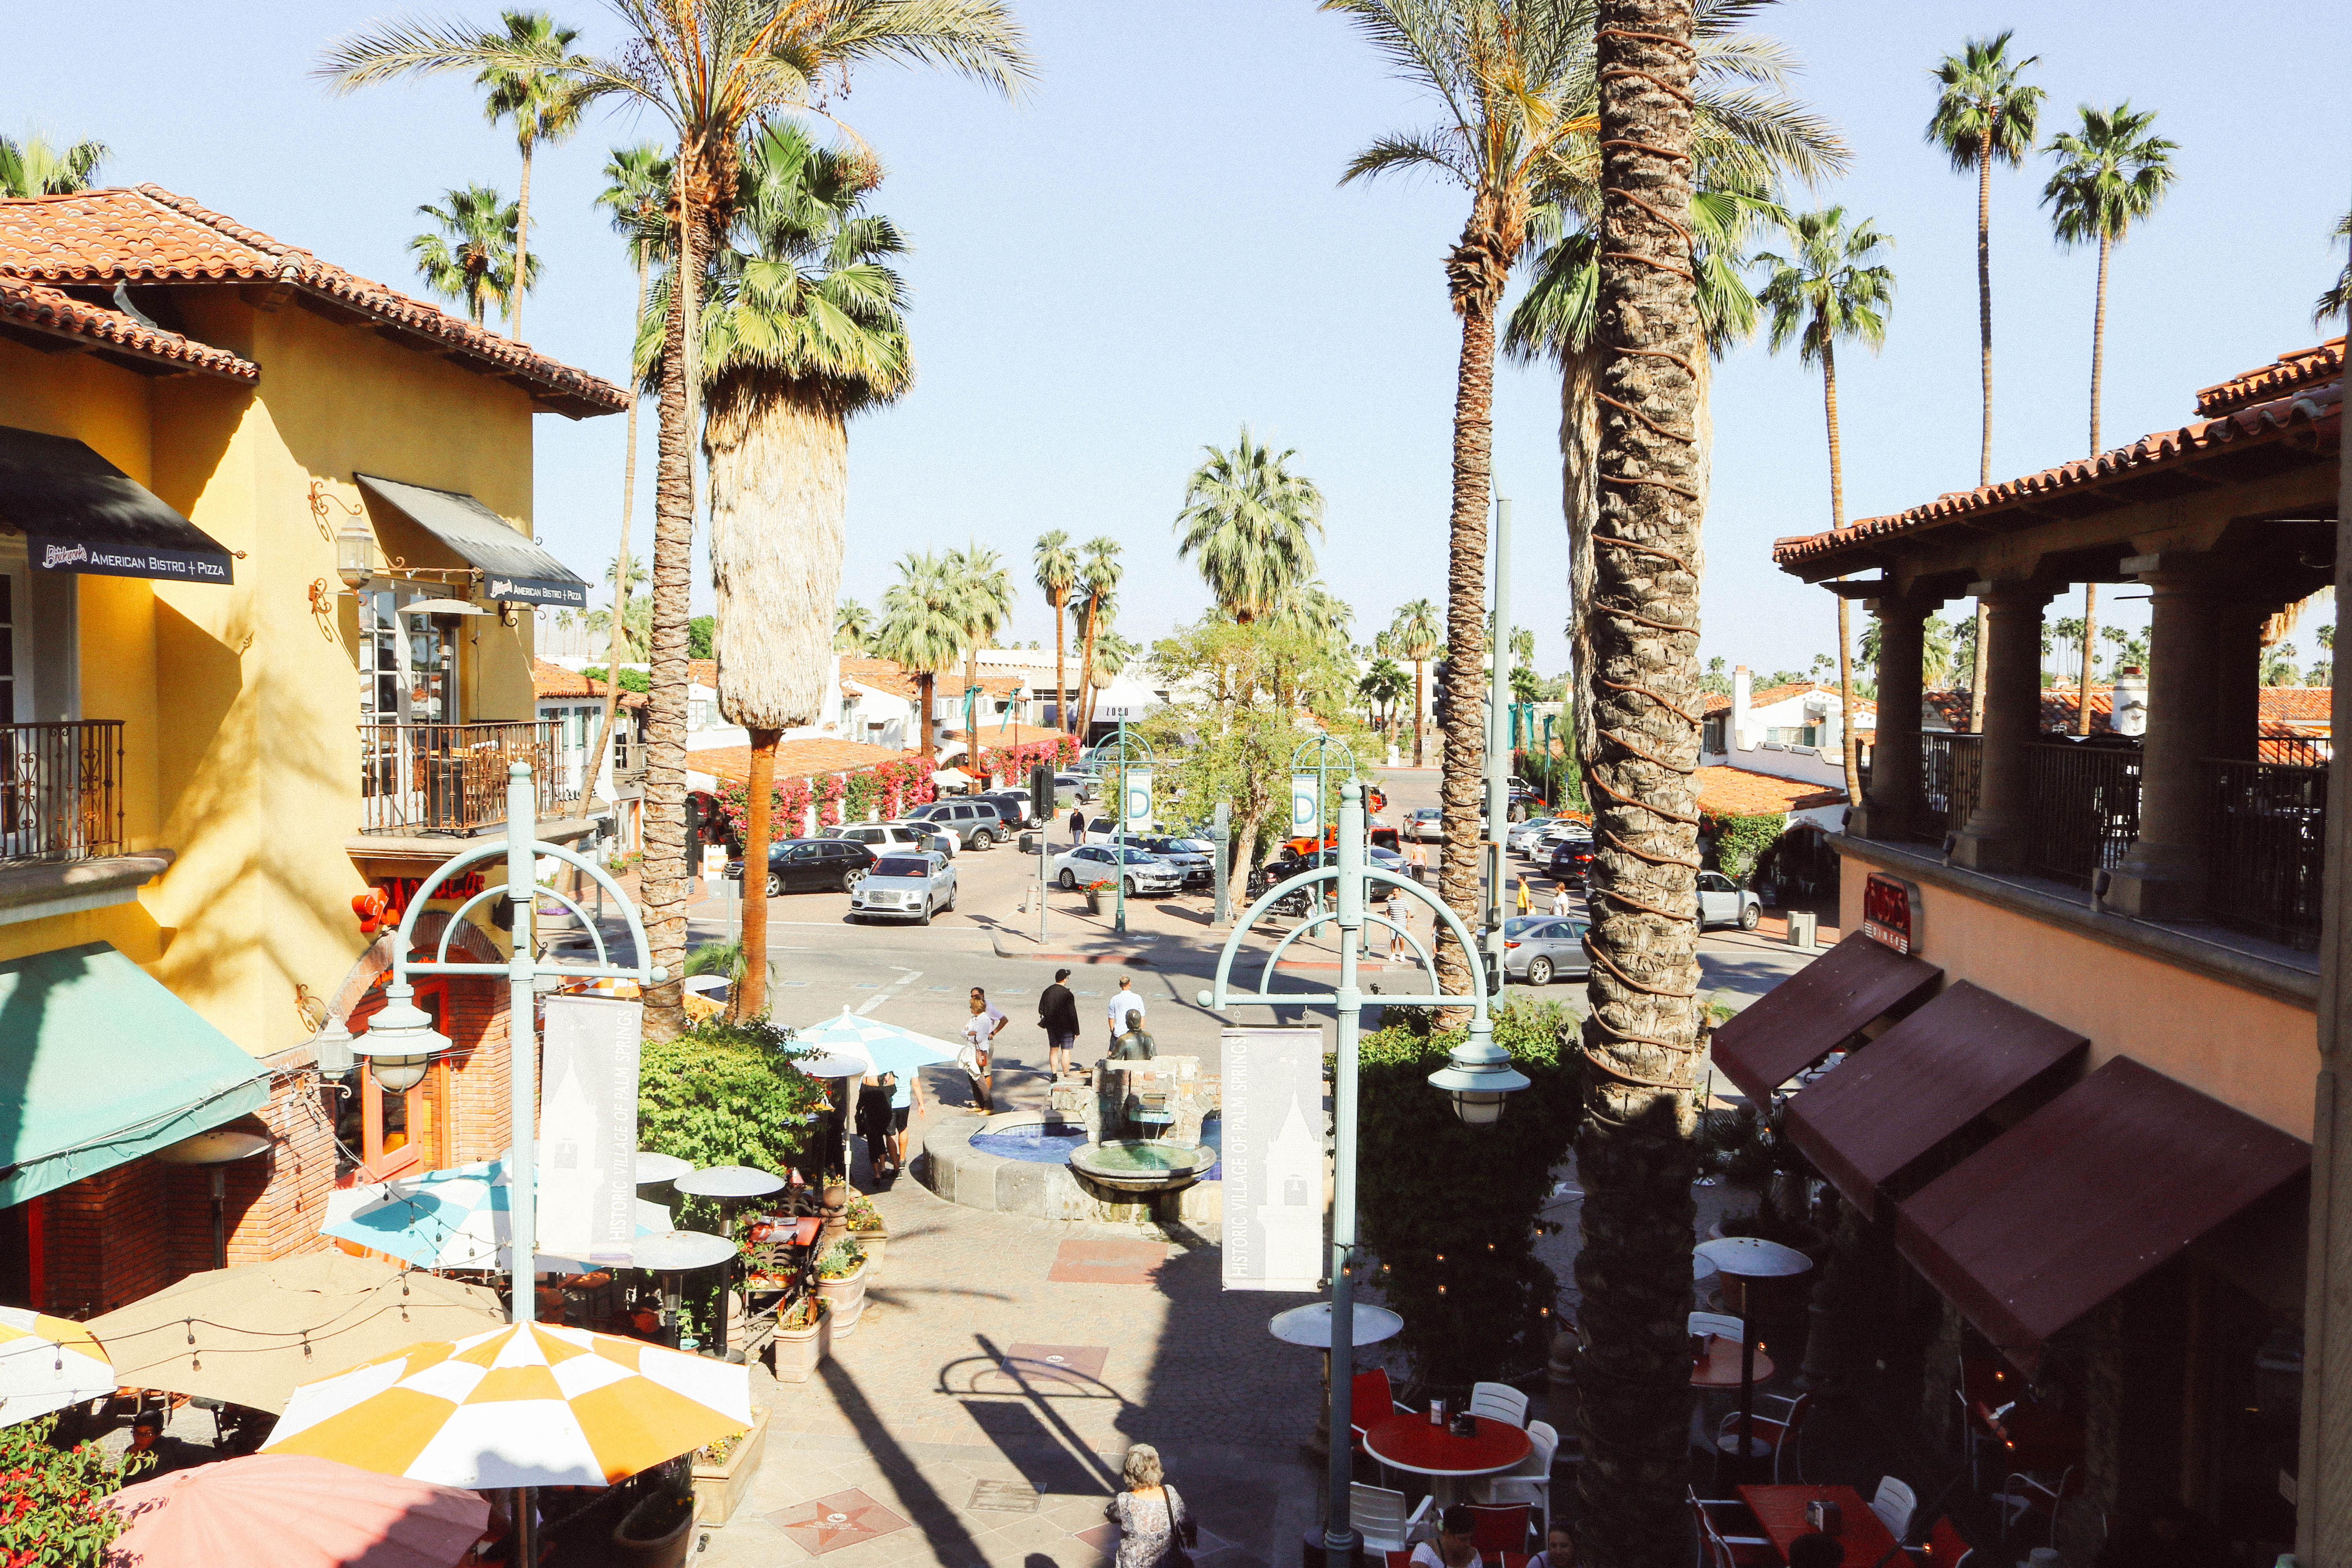 The Traveler's Guide to Downtown Palm Springs: Experience ... on morton botanical garden palm springs, map of greater palm springs, google map of palm springs, street map of palm springs, map of california and palm springs, celebrities living in palm springs, map of california cities palm springs, map of california showing palm springs, good neighborhoods in palm springs, map of cities around palm springs, i-10 palm springs, downtown palm springs, united states map with palm springs, famous people in palm springs, map of southern california palm springs, best shopping in palm springs, map of hotels in palm springs, map stars homes palm springs,